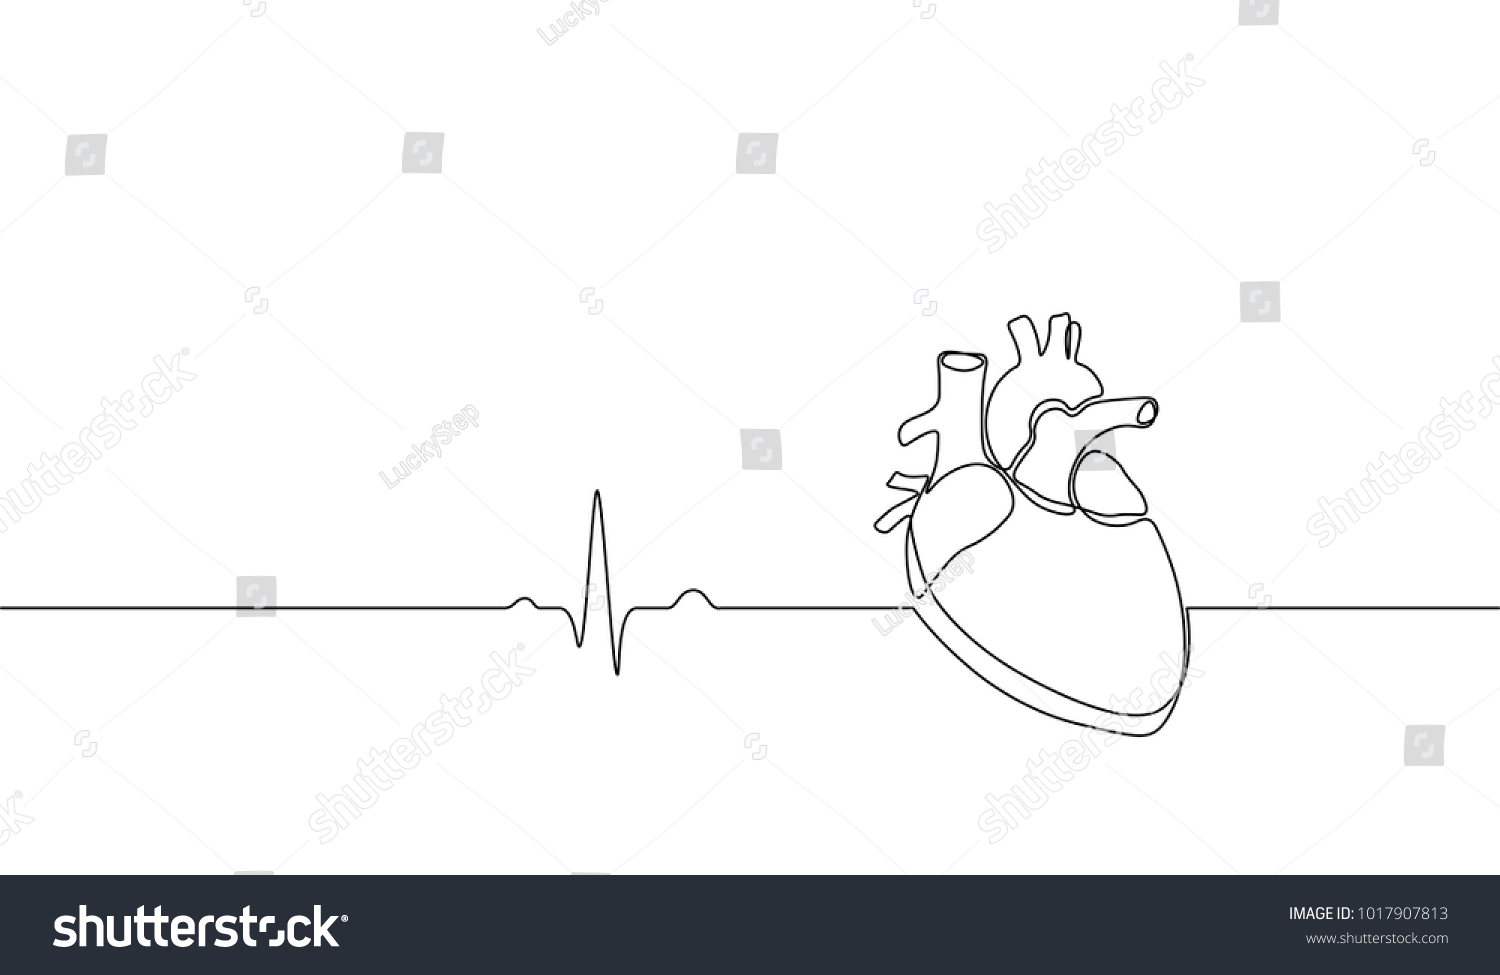 Line Art Of Heart : Single continuous line art anatomical human stock vector hd royalty